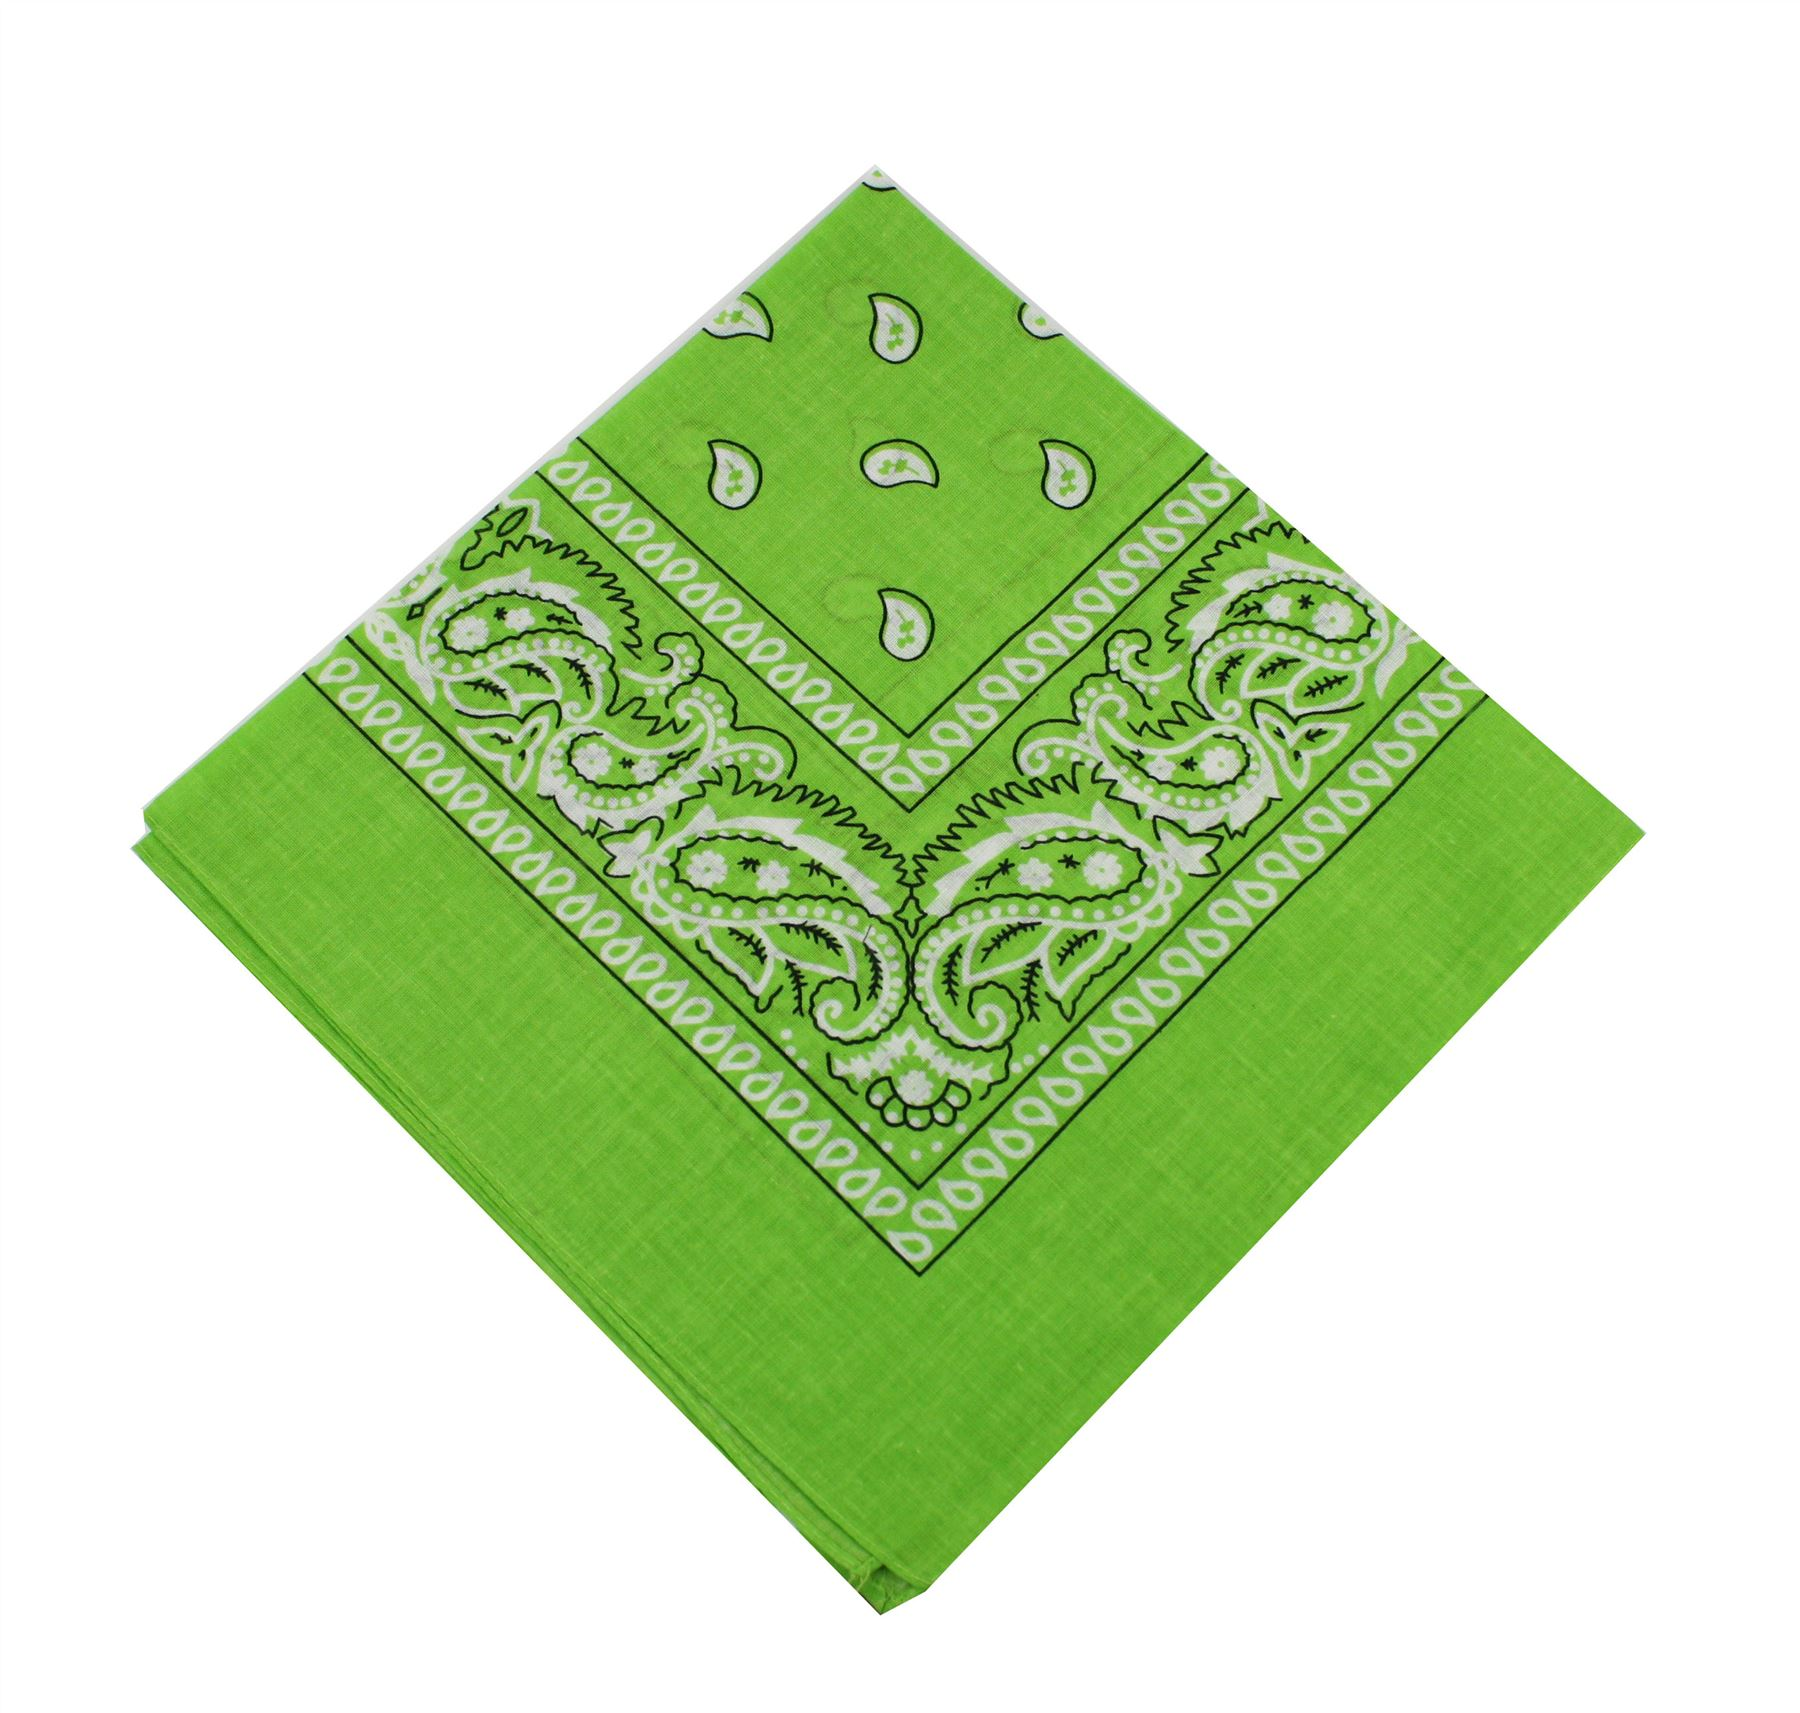 paisley bandana mens ladies headwear cotton scarf neck wrist wrap headtie hair b ebay. Black Bedroom Furniture Sets. Home Design Ideas